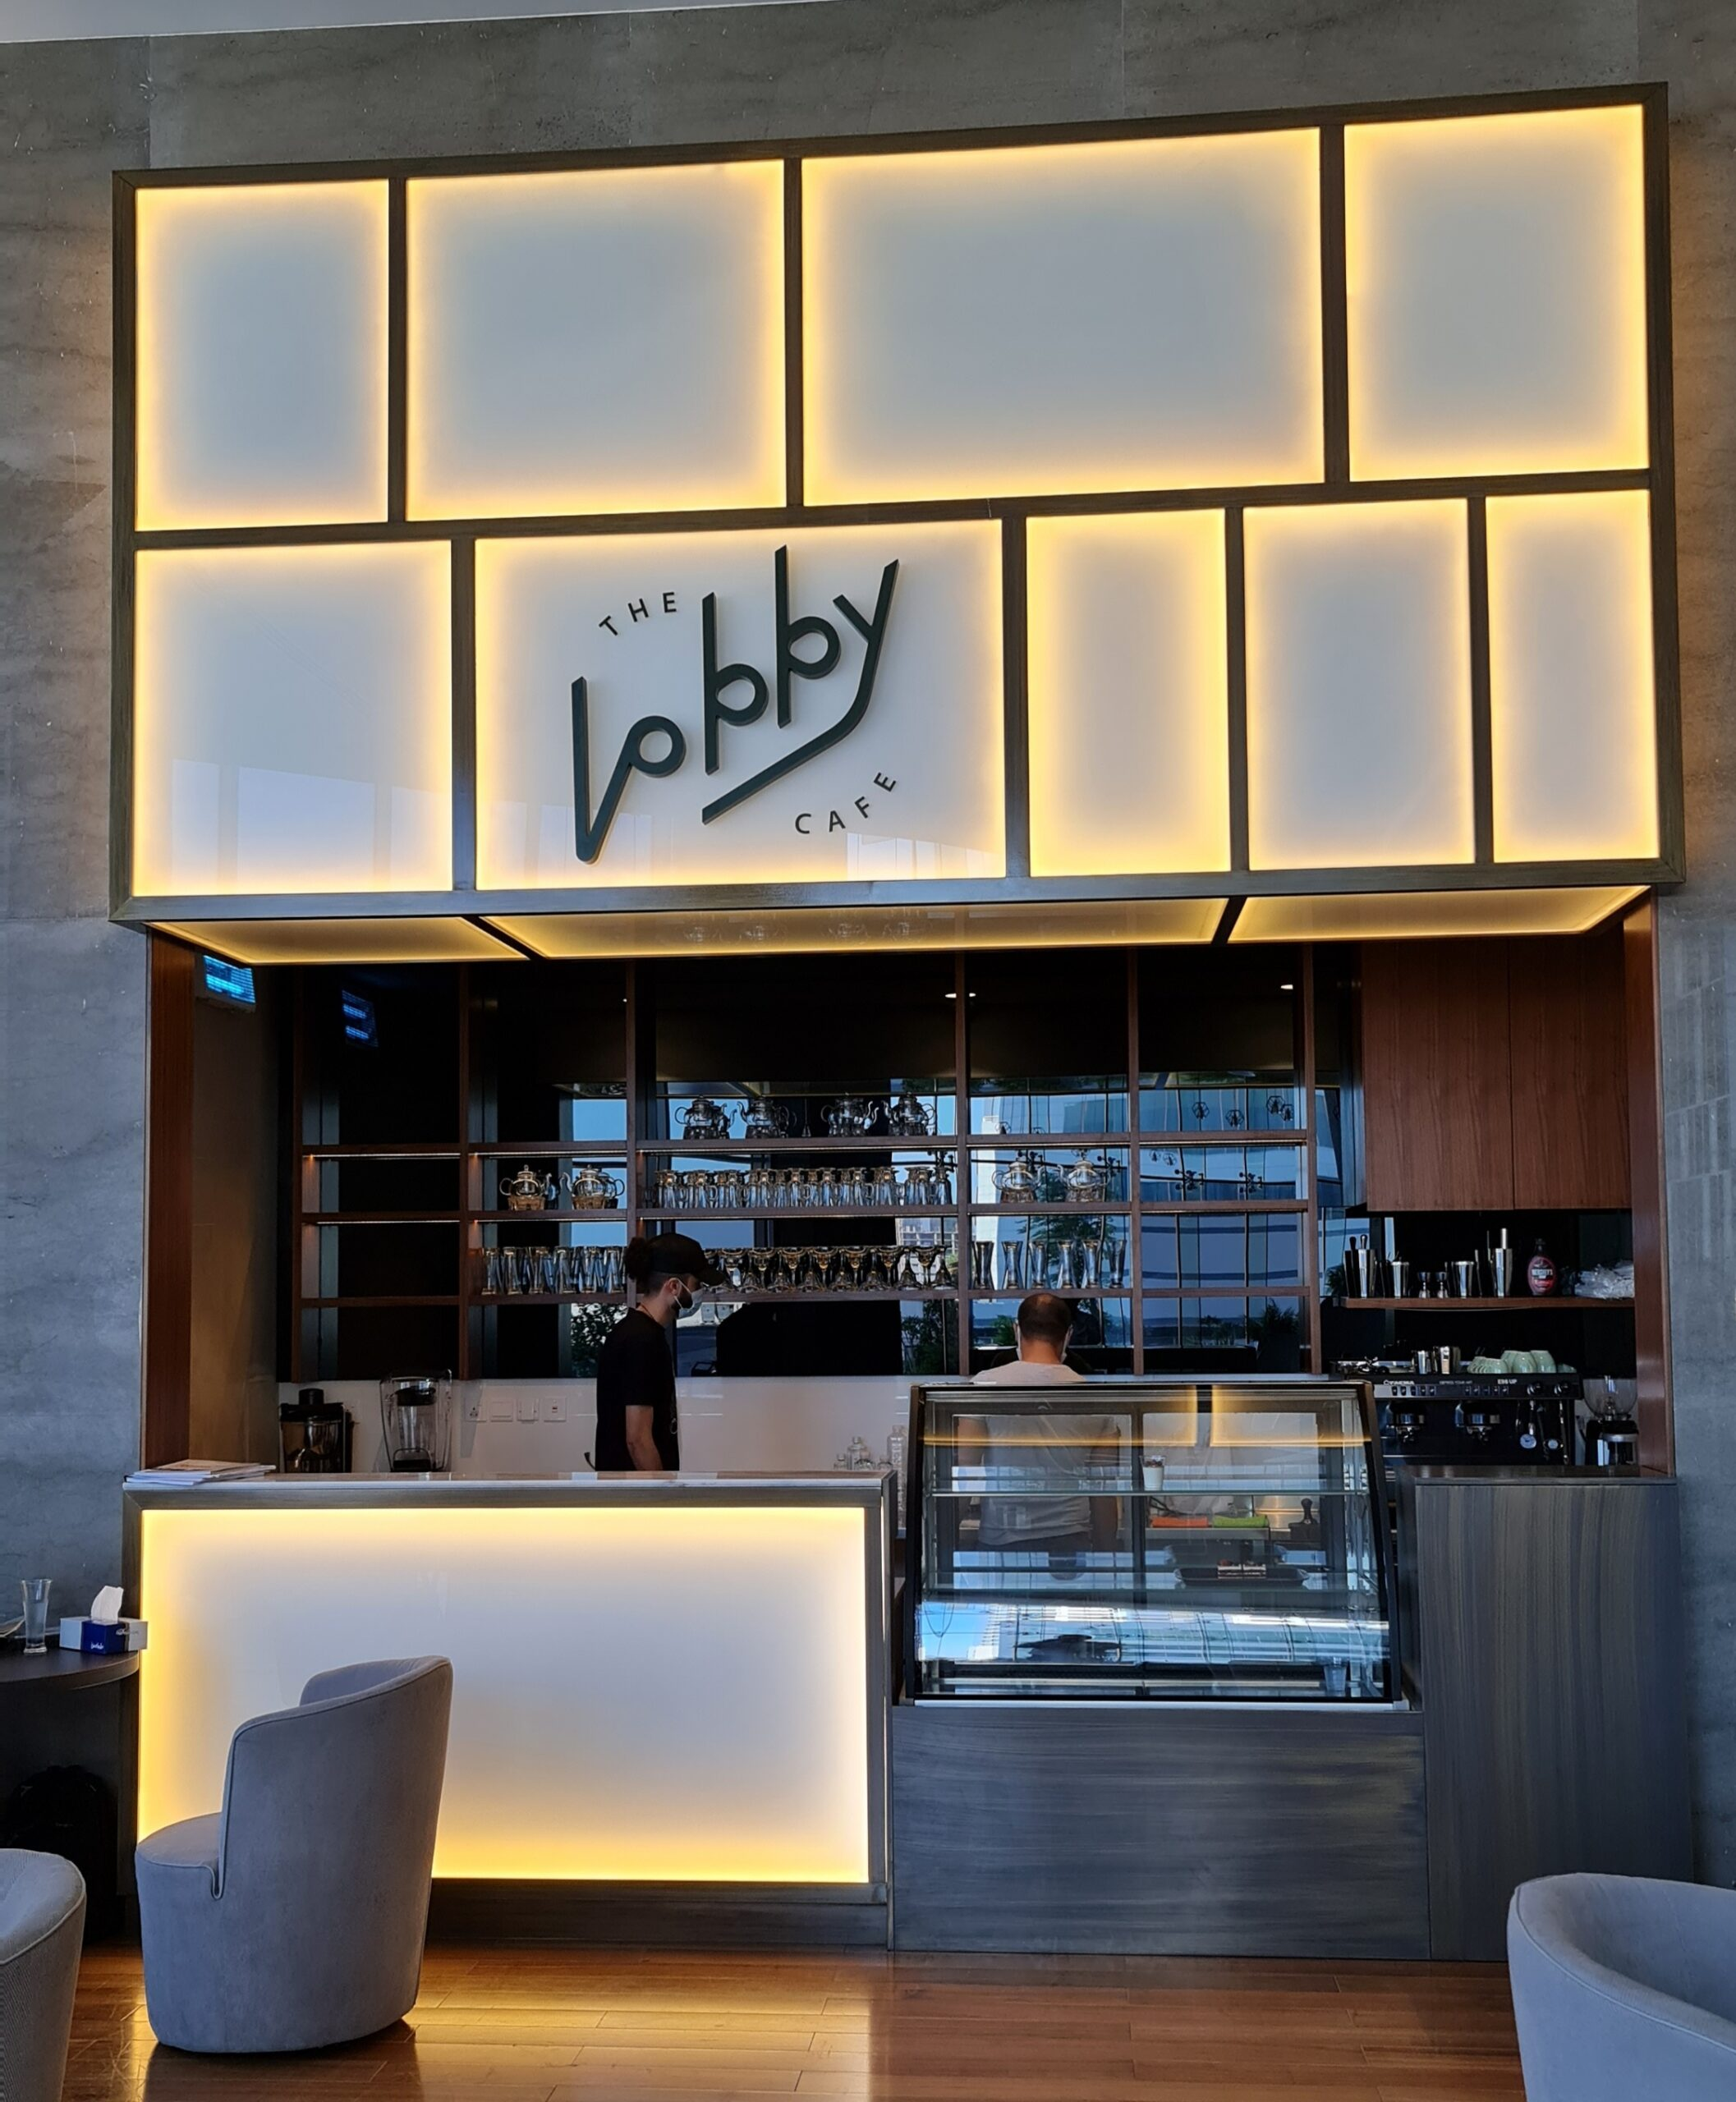 Lobby Cafe - Catamaran Building, Seef